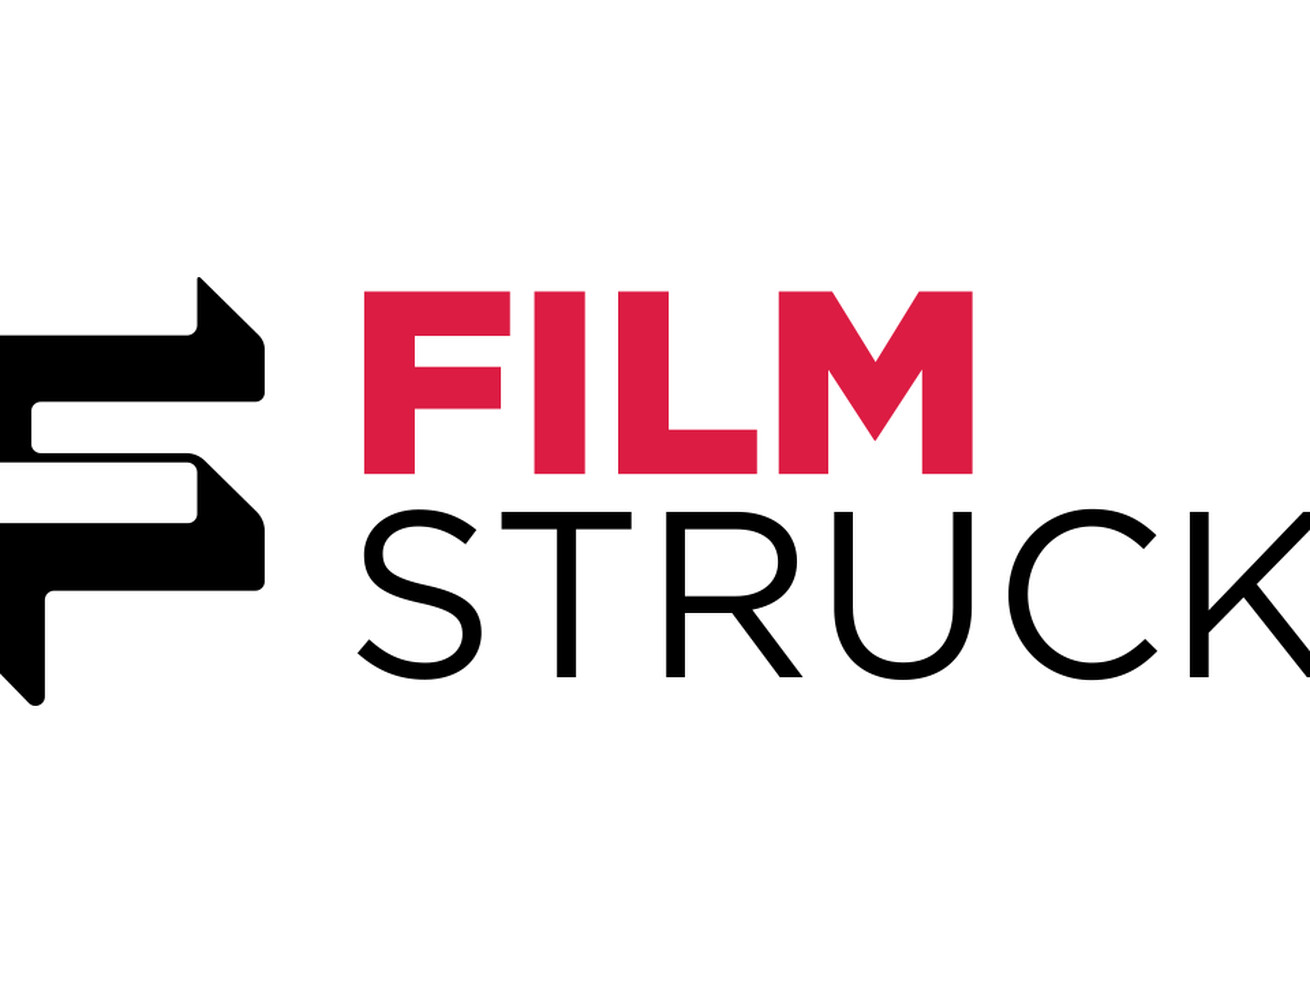 The streaming service FilmStruck is being shut down by Turner and Warner Bros. at the end of November.